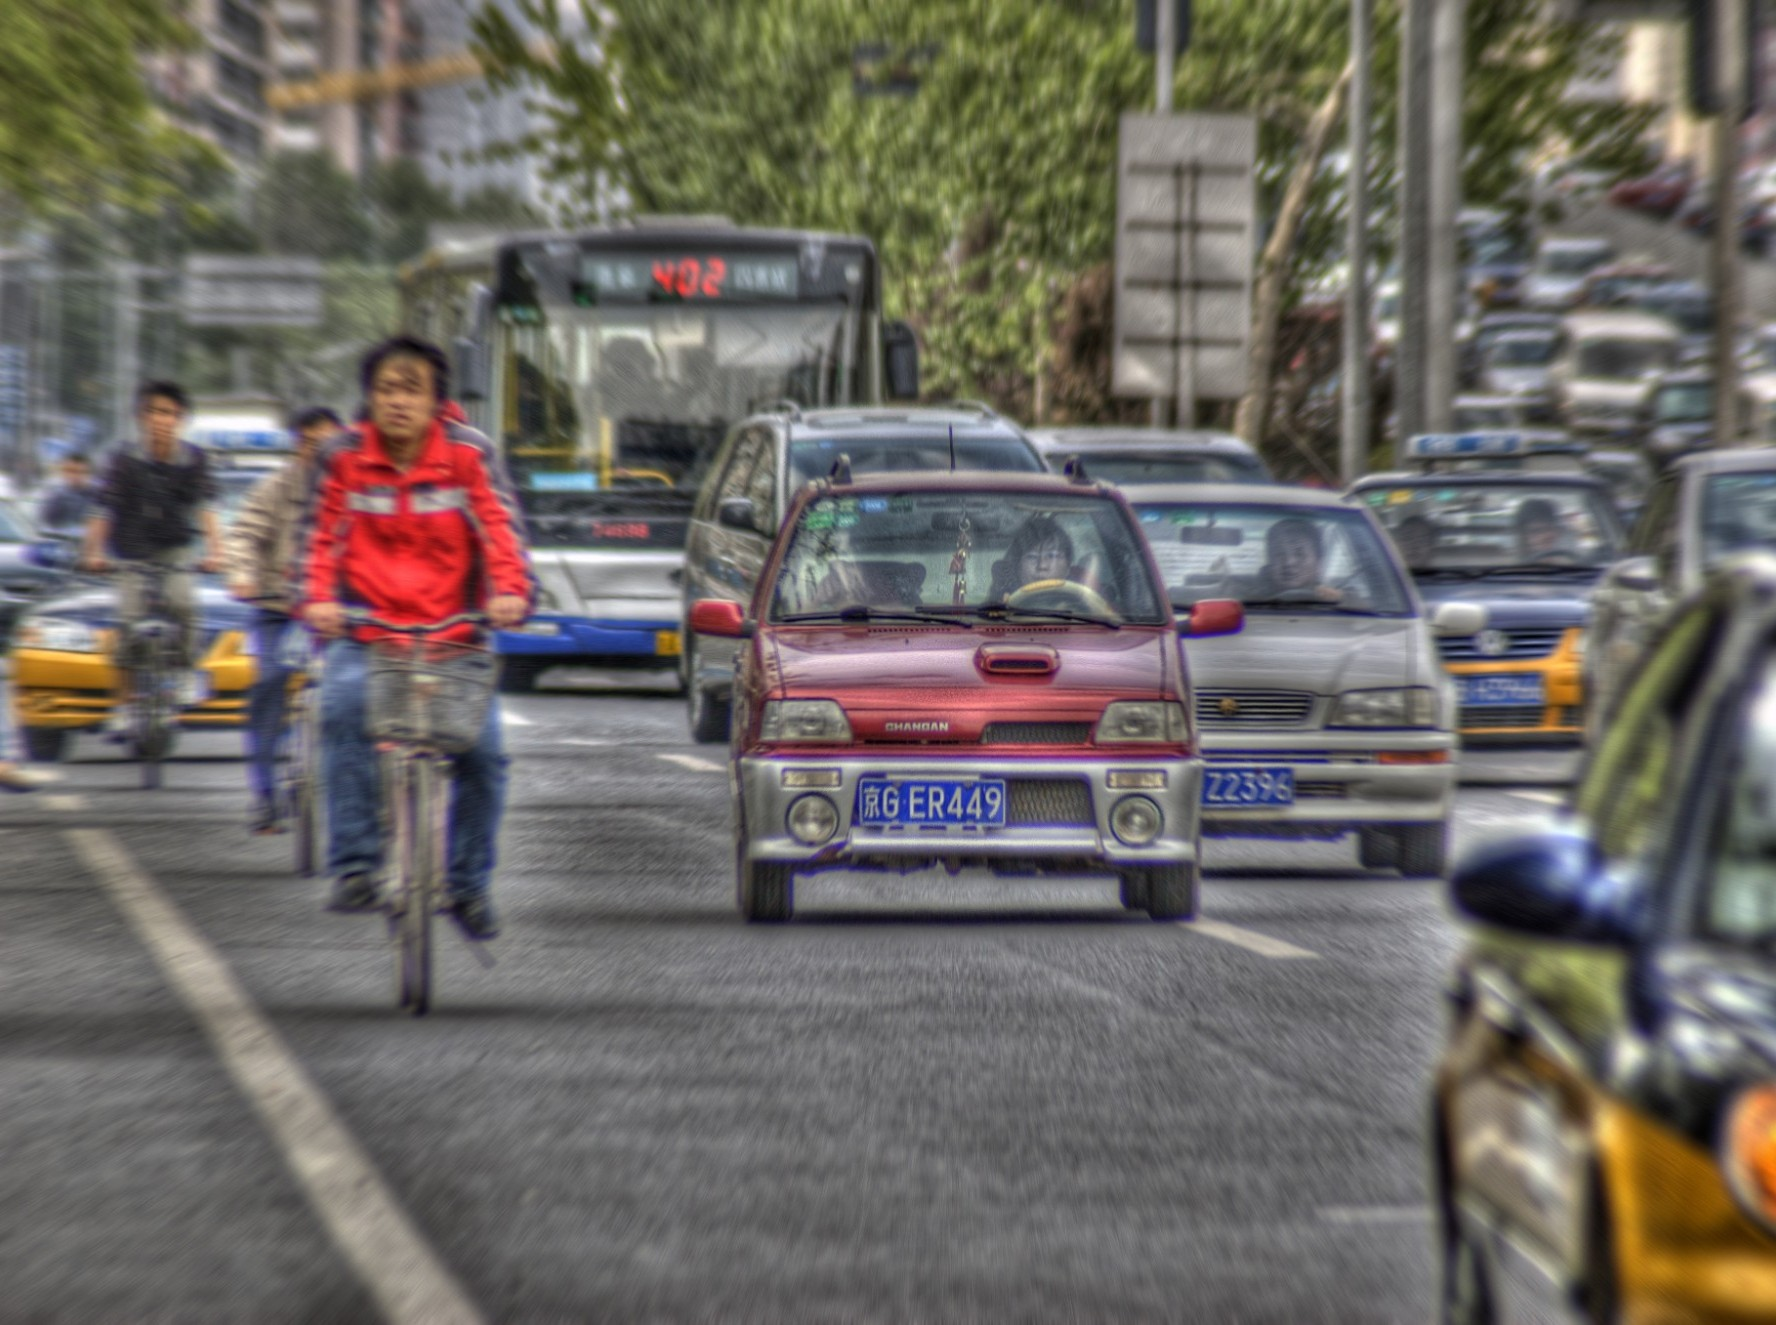 This study identified transportation policies that affect how much people want to drive, including consumer pricing of fuel, policies that discourage excessive driving, and those that encourage alternatives to driving.